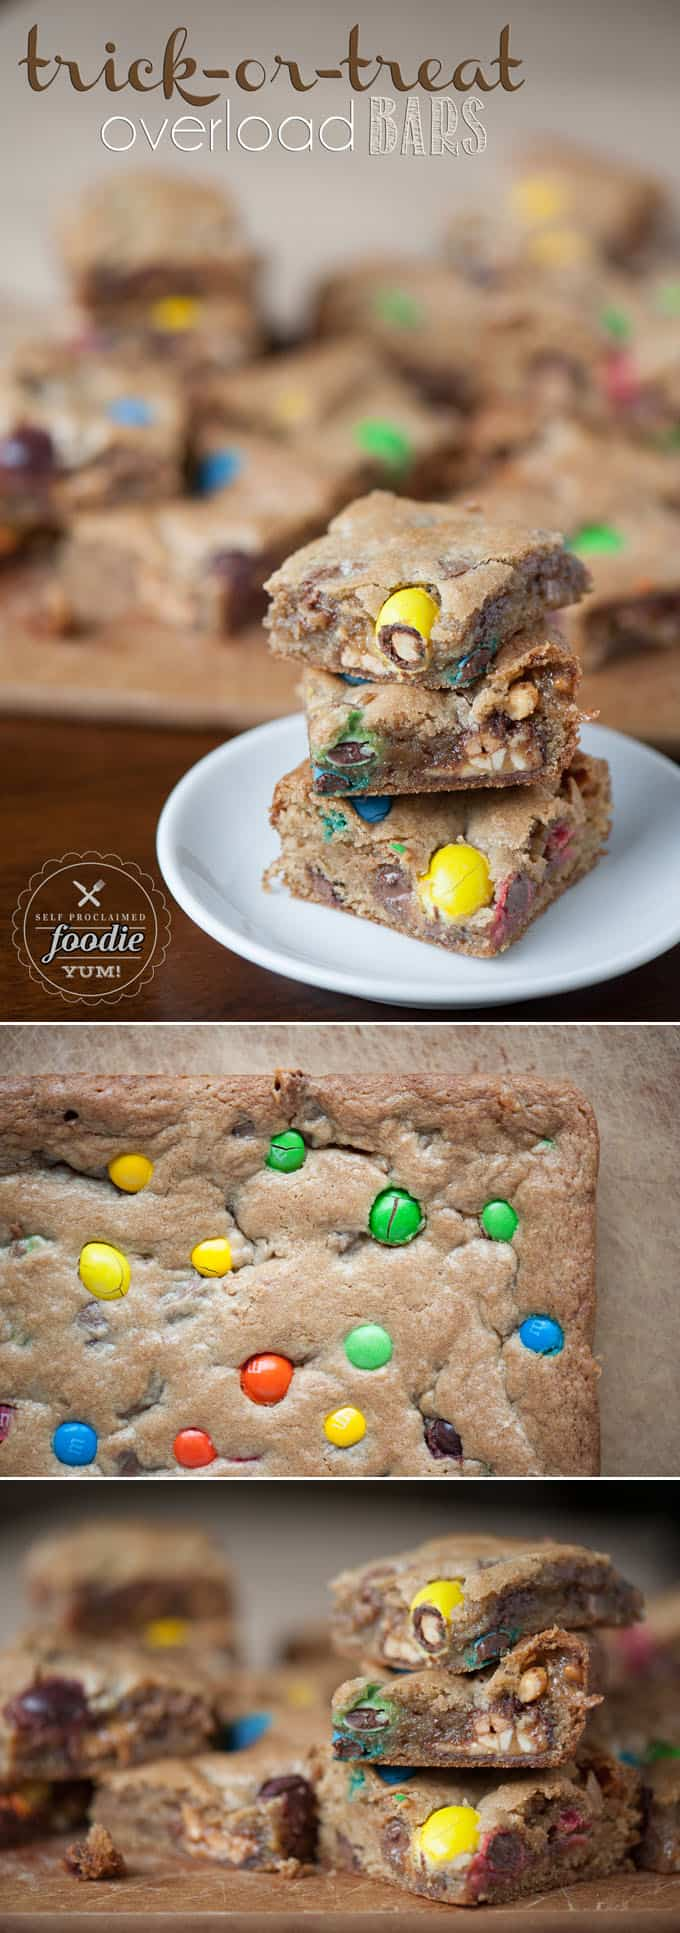 These Trick-or-Treat Overload Bars are the best use for leftover Halloween candy, insanely delicious, and an easy to make cookie bar dessert treat.